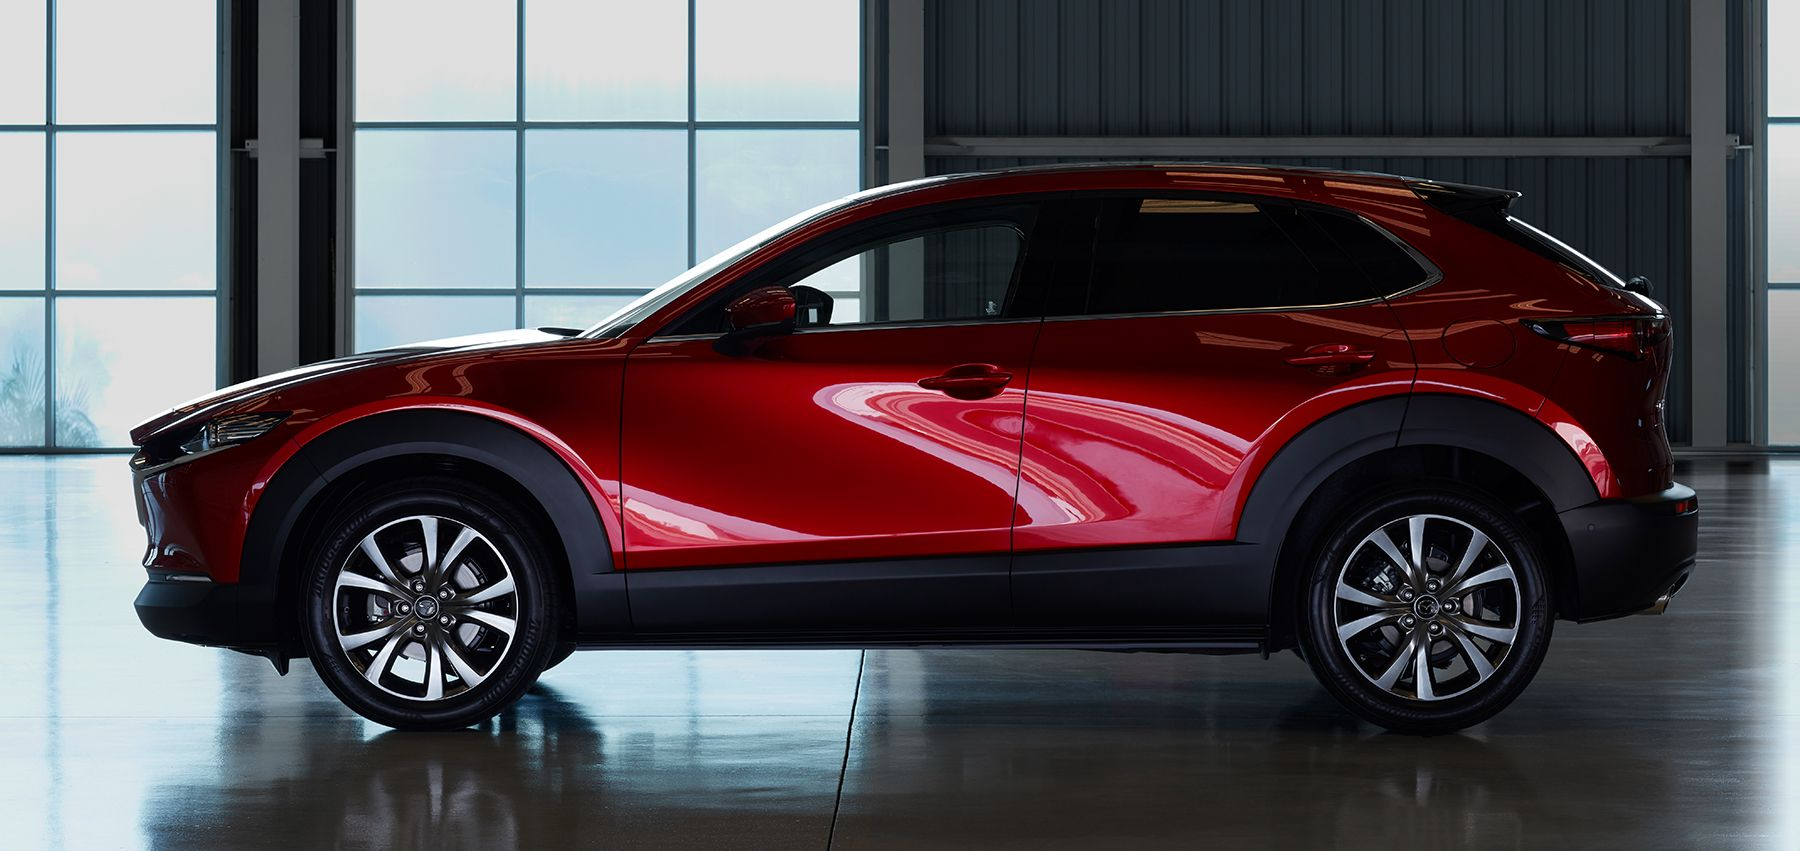 Pin by Jhao Cing Li on CARS in 2020 Mazda, Exercise, Suv car